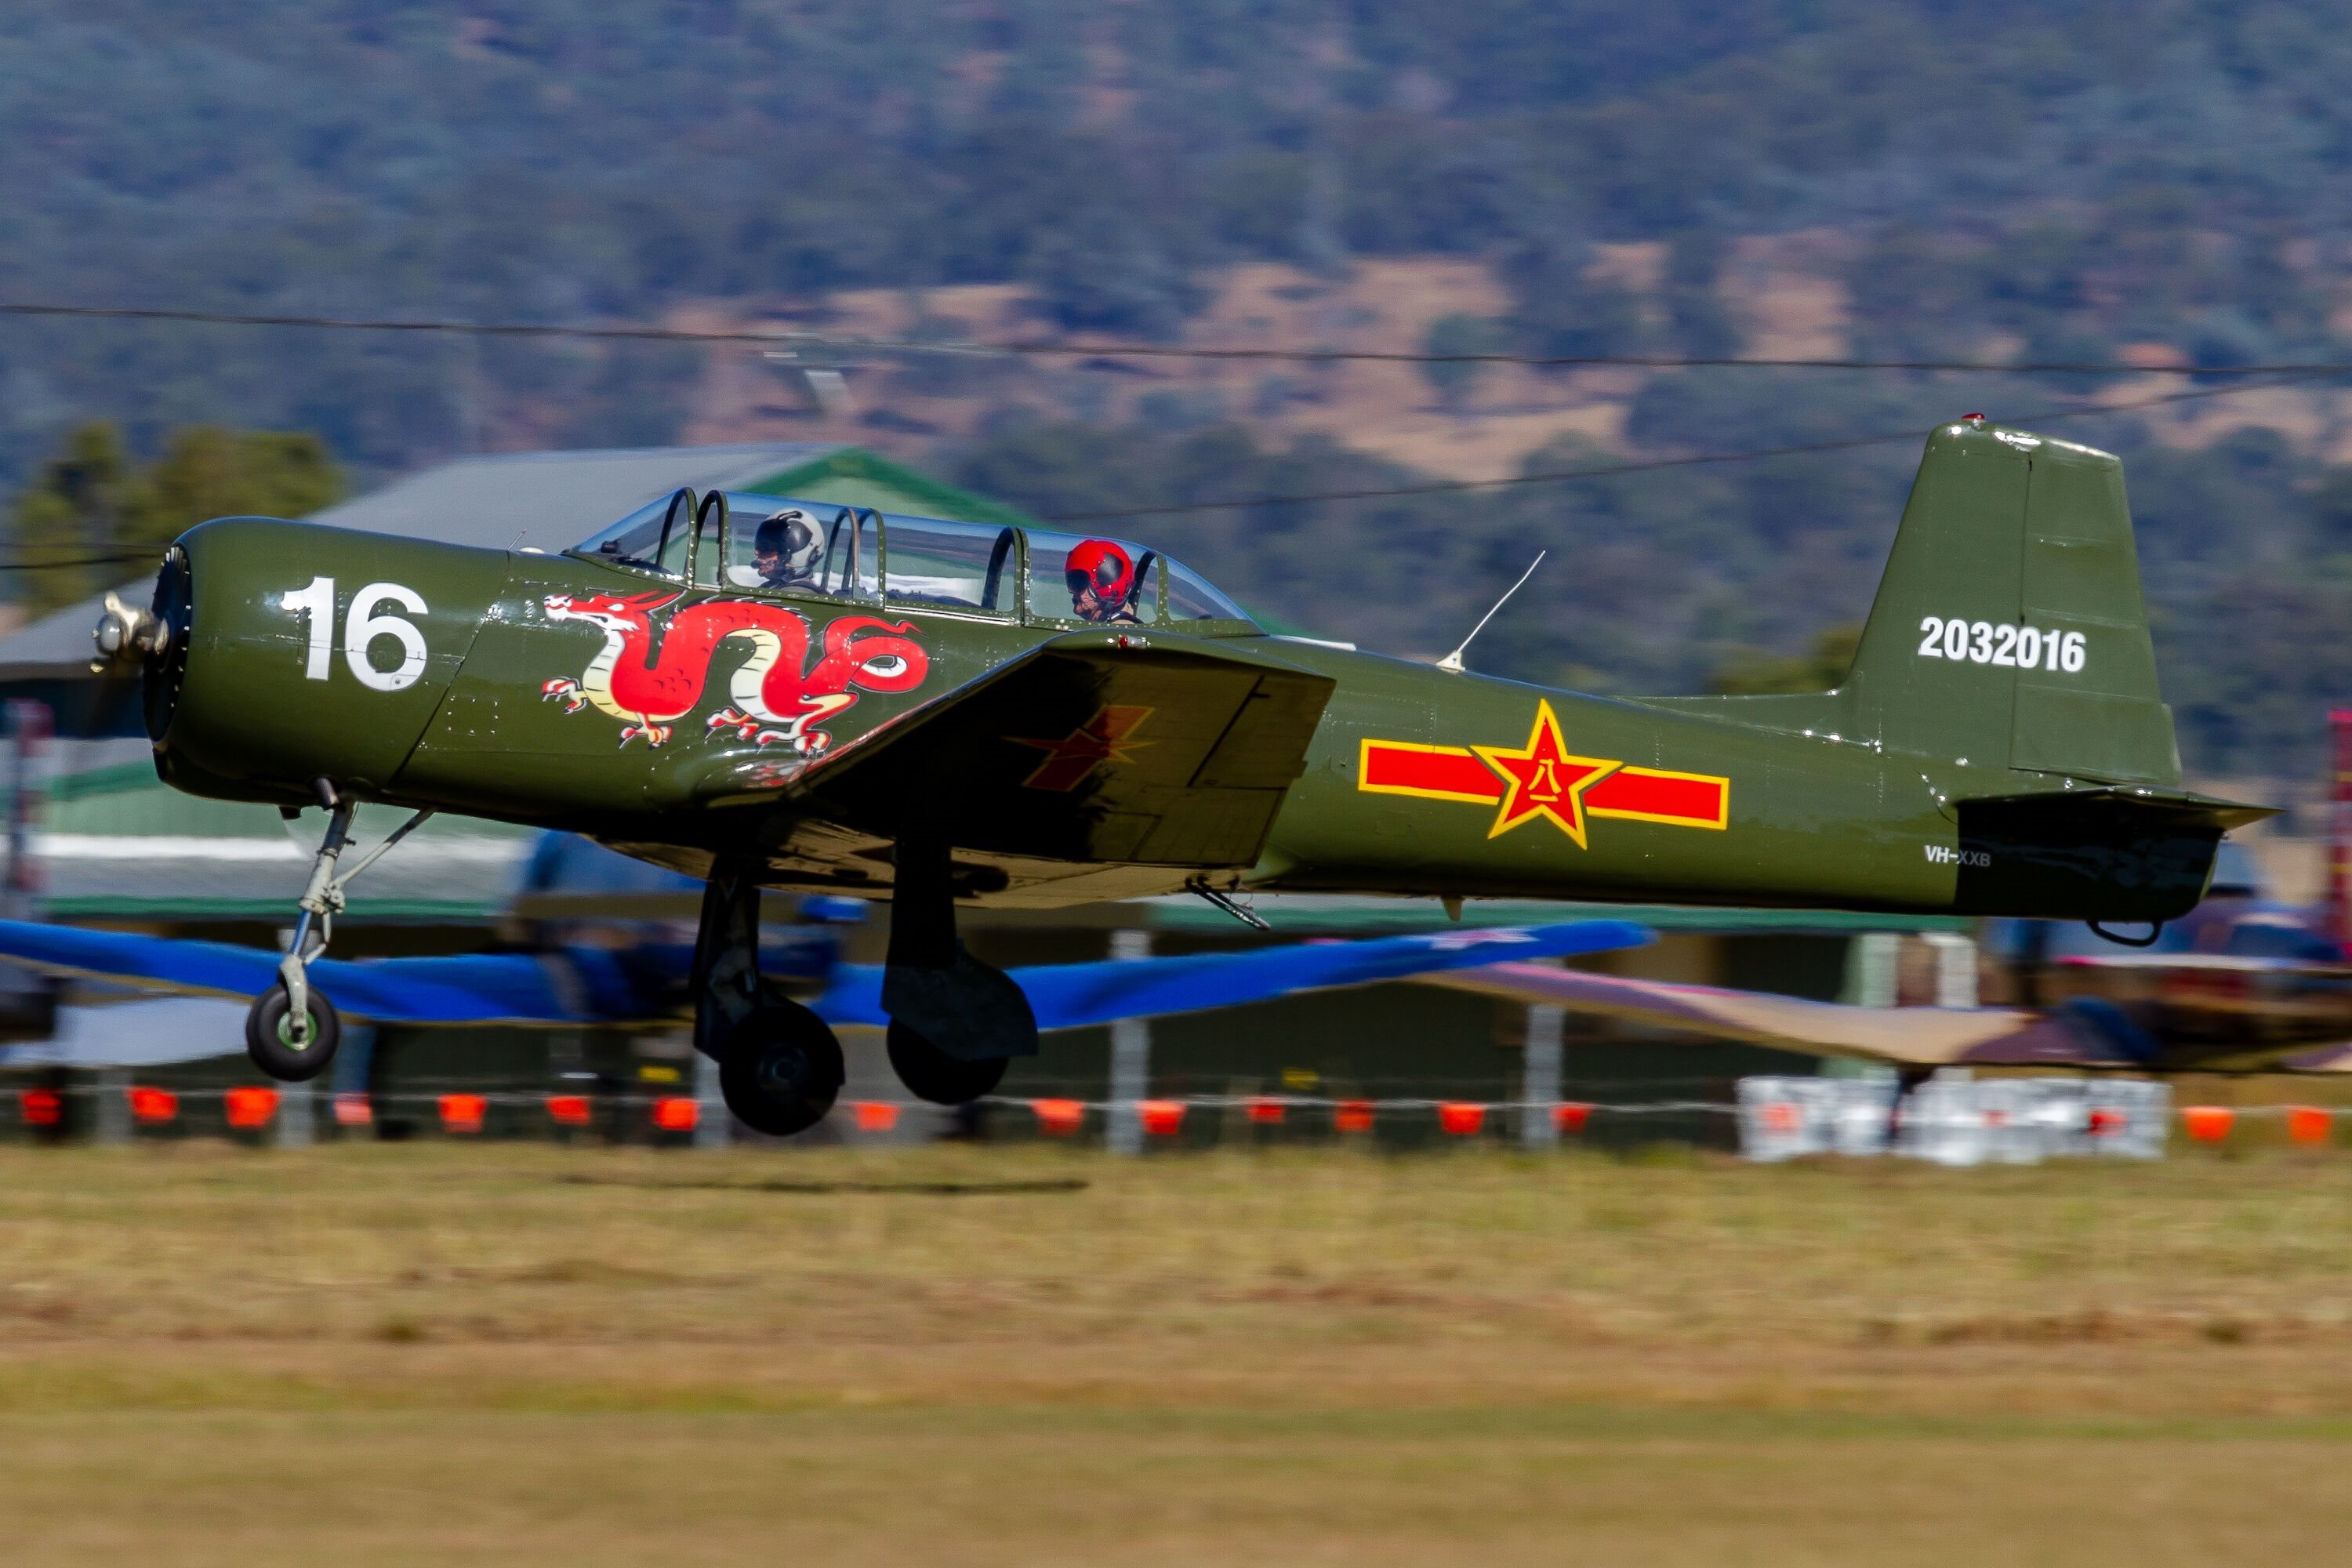 1967 Nanchang CJ-6 Aircraft